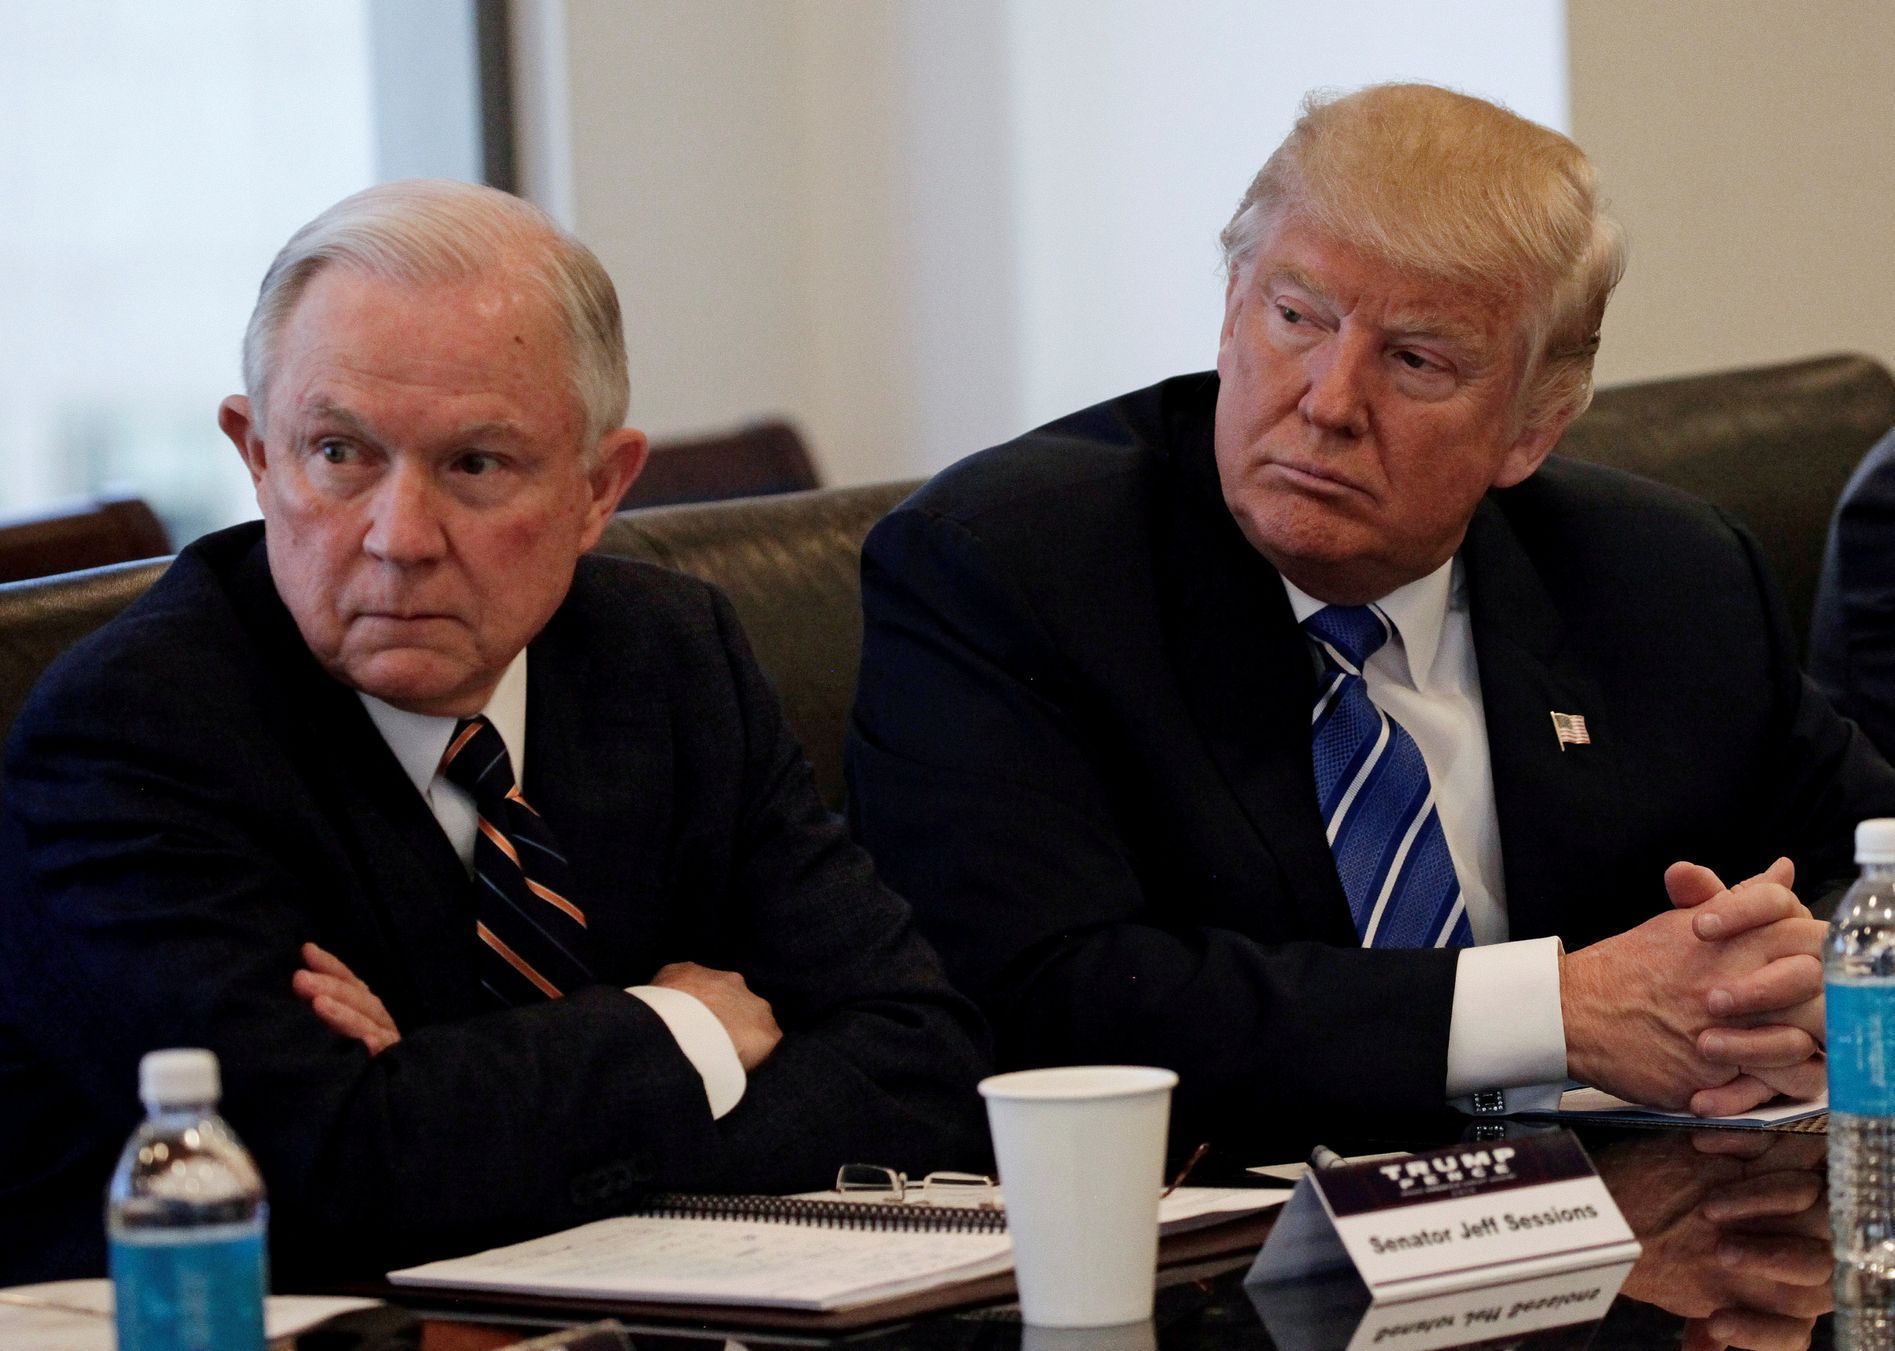 Jeff Sessions s Donaldem Trumpem